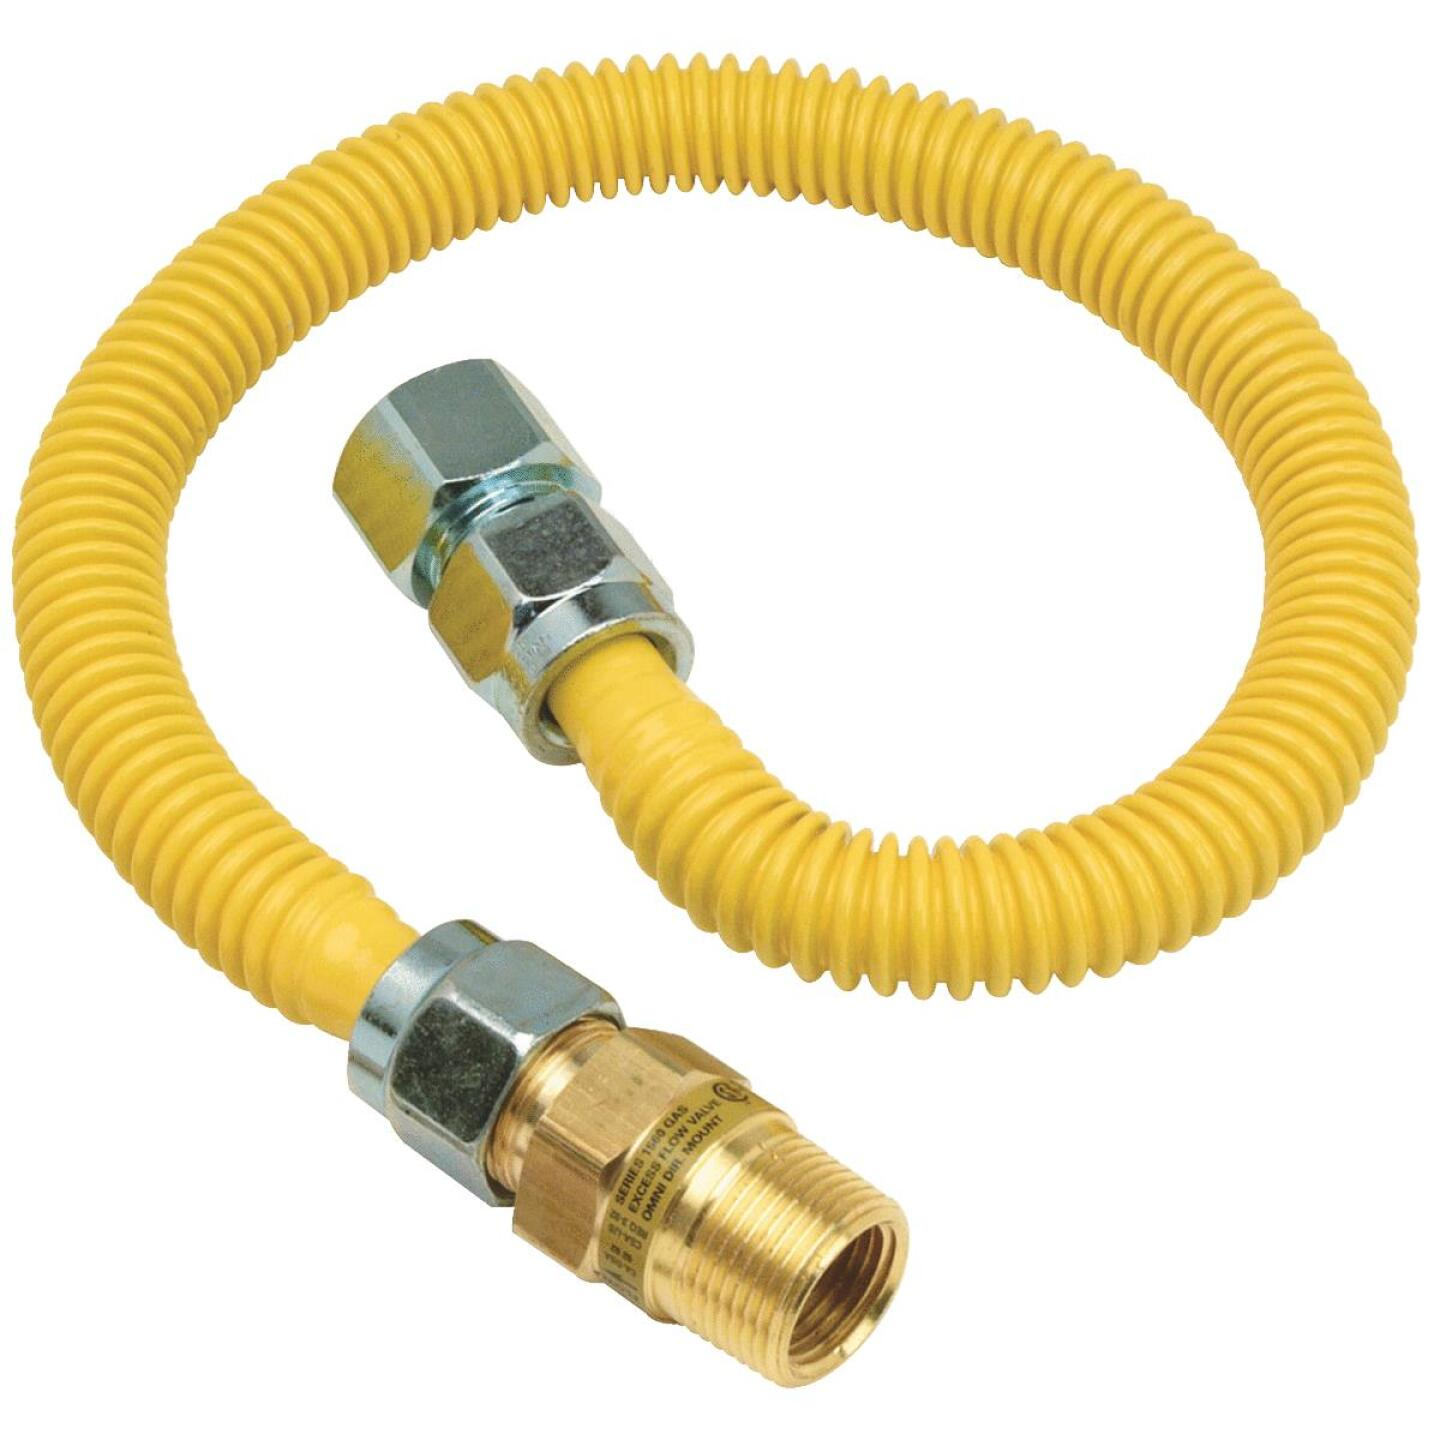 BrassCraft Safety +PLUS 5/8 In. 1/2 In. 48 In. Gas Connector Image 1